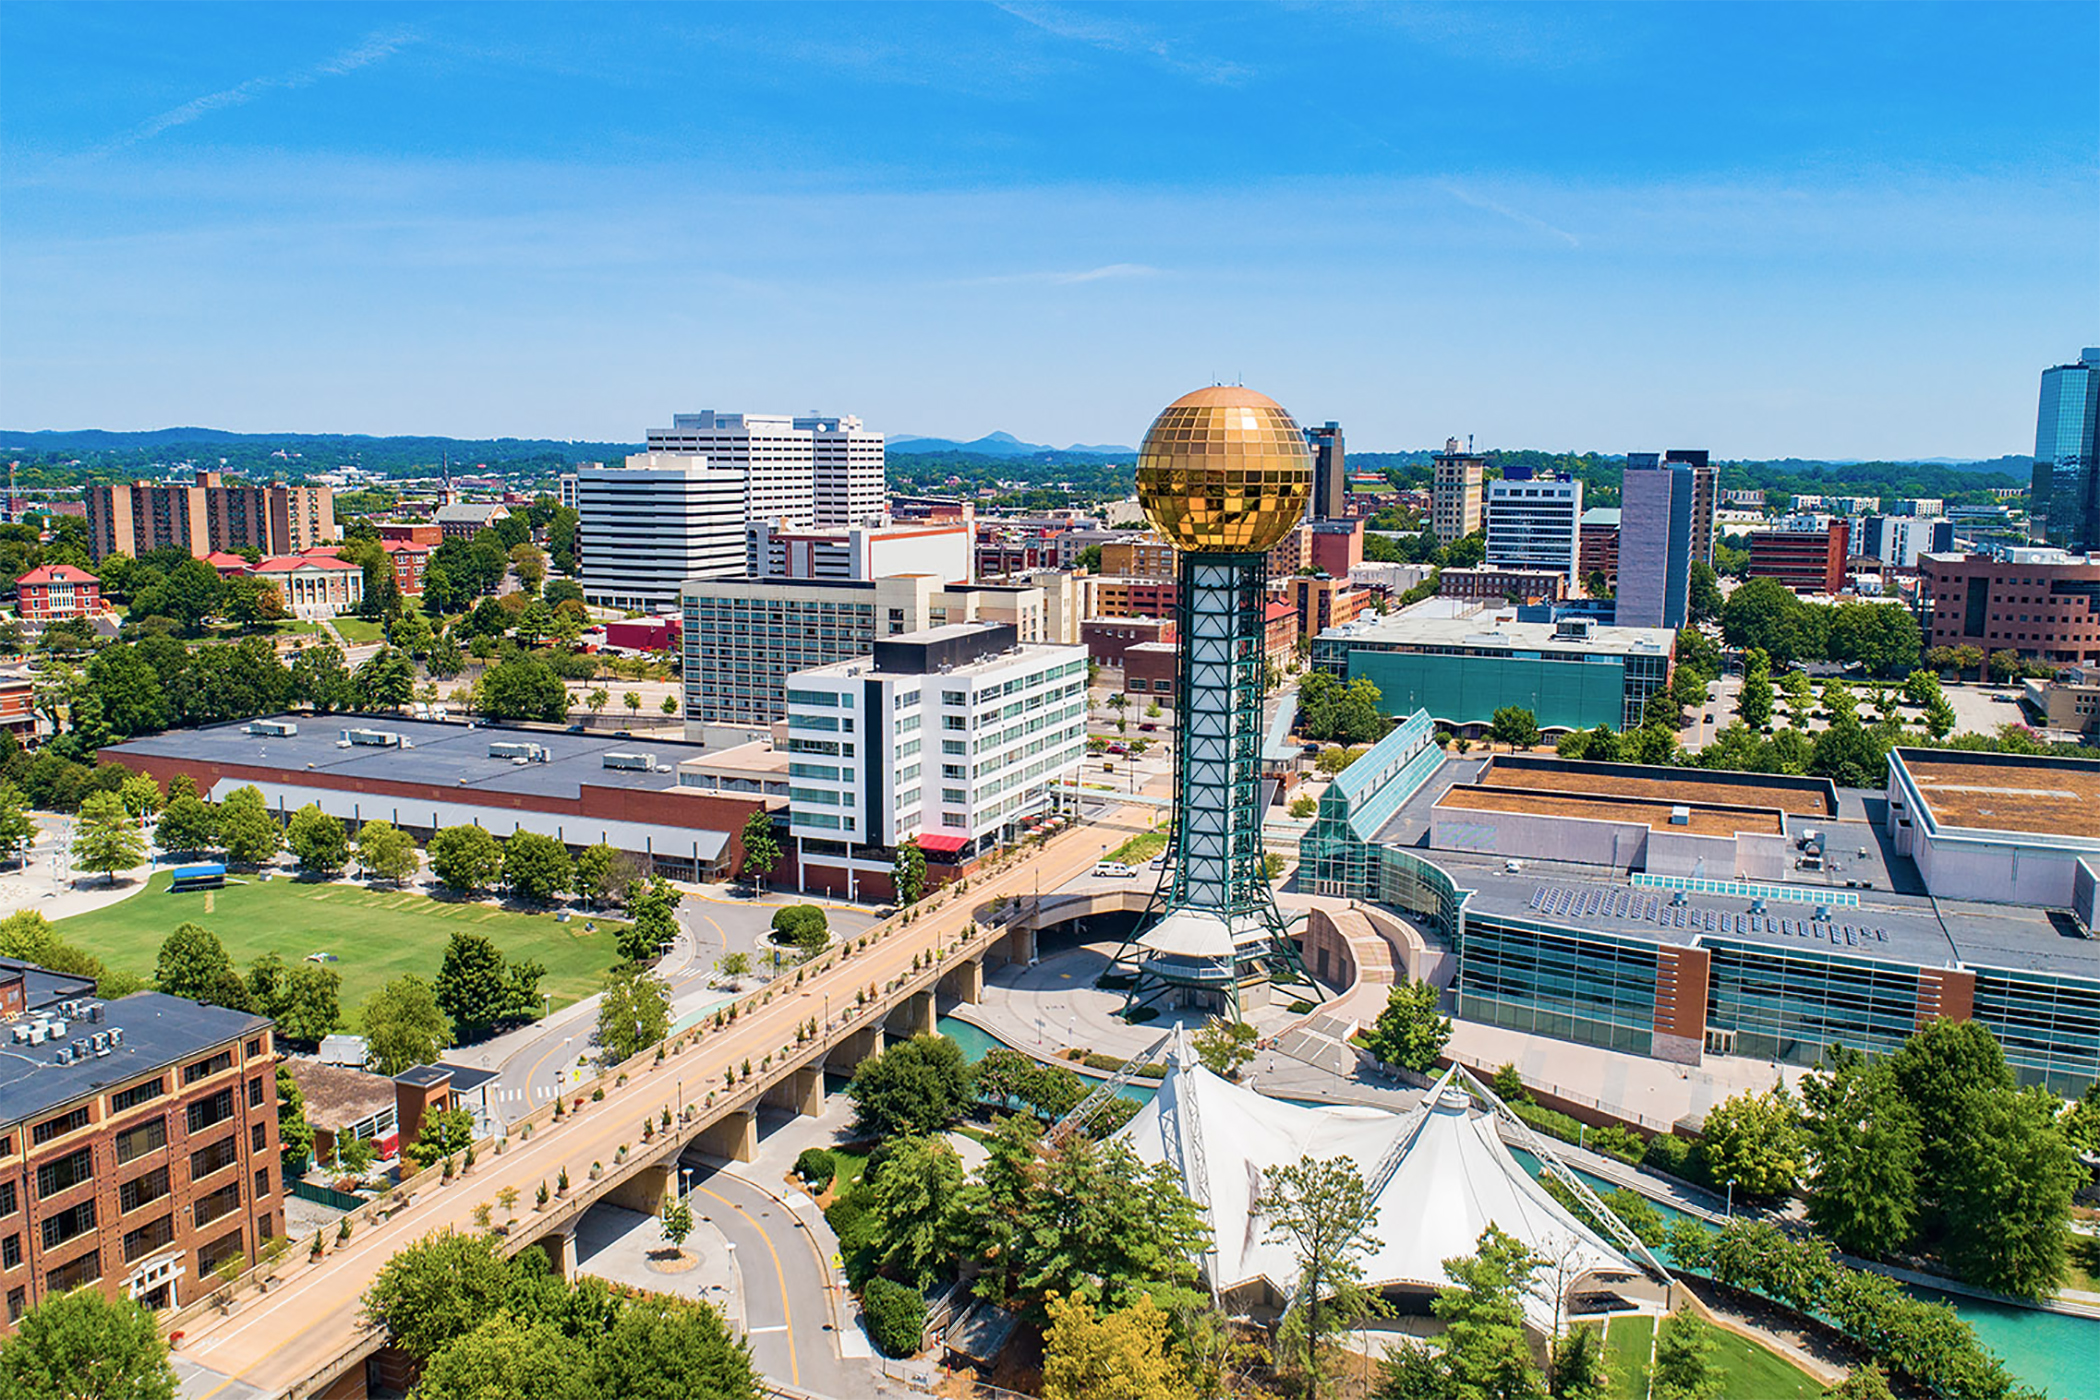 Knoxville, Tennessee, Rides Decadeslong Wave of Downtown Revival